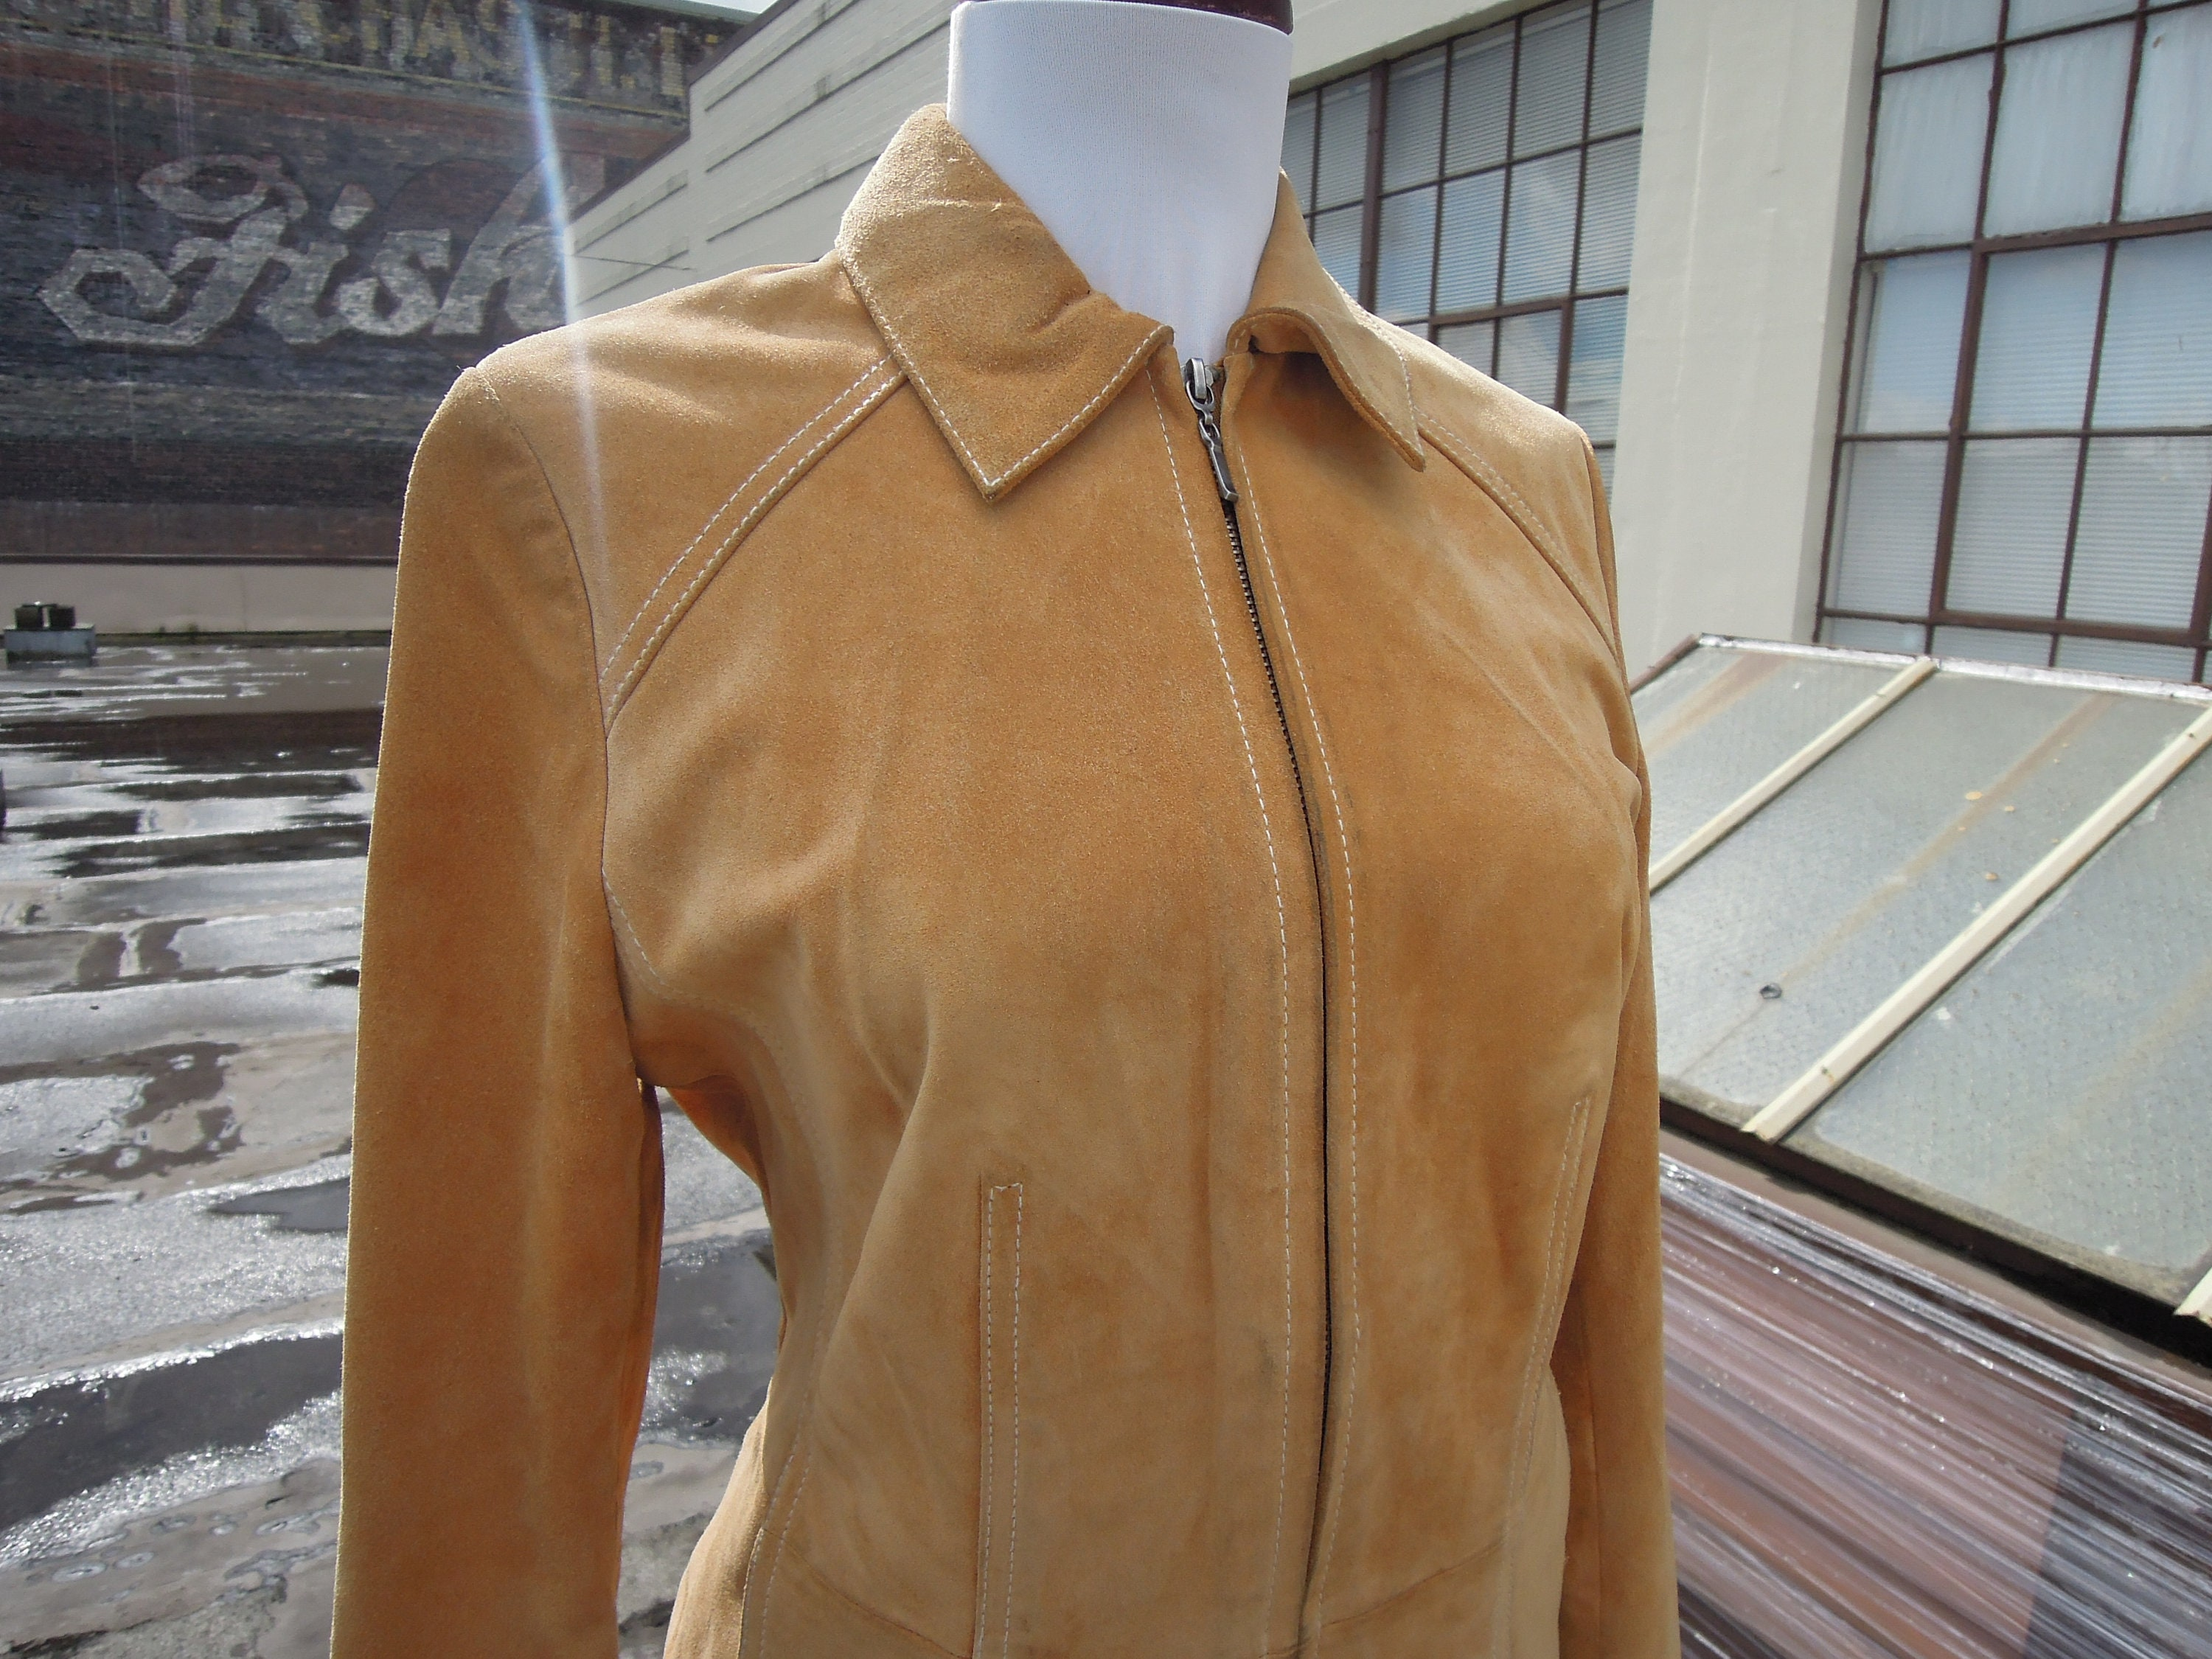 a6a7ebd1 Vintage Soft Suede Leather Golden Tan Zip Up Shirt Jacket Coat Womens Small  XS 90's 70's Inspired Moto 1990s Caramel Camel zipper front